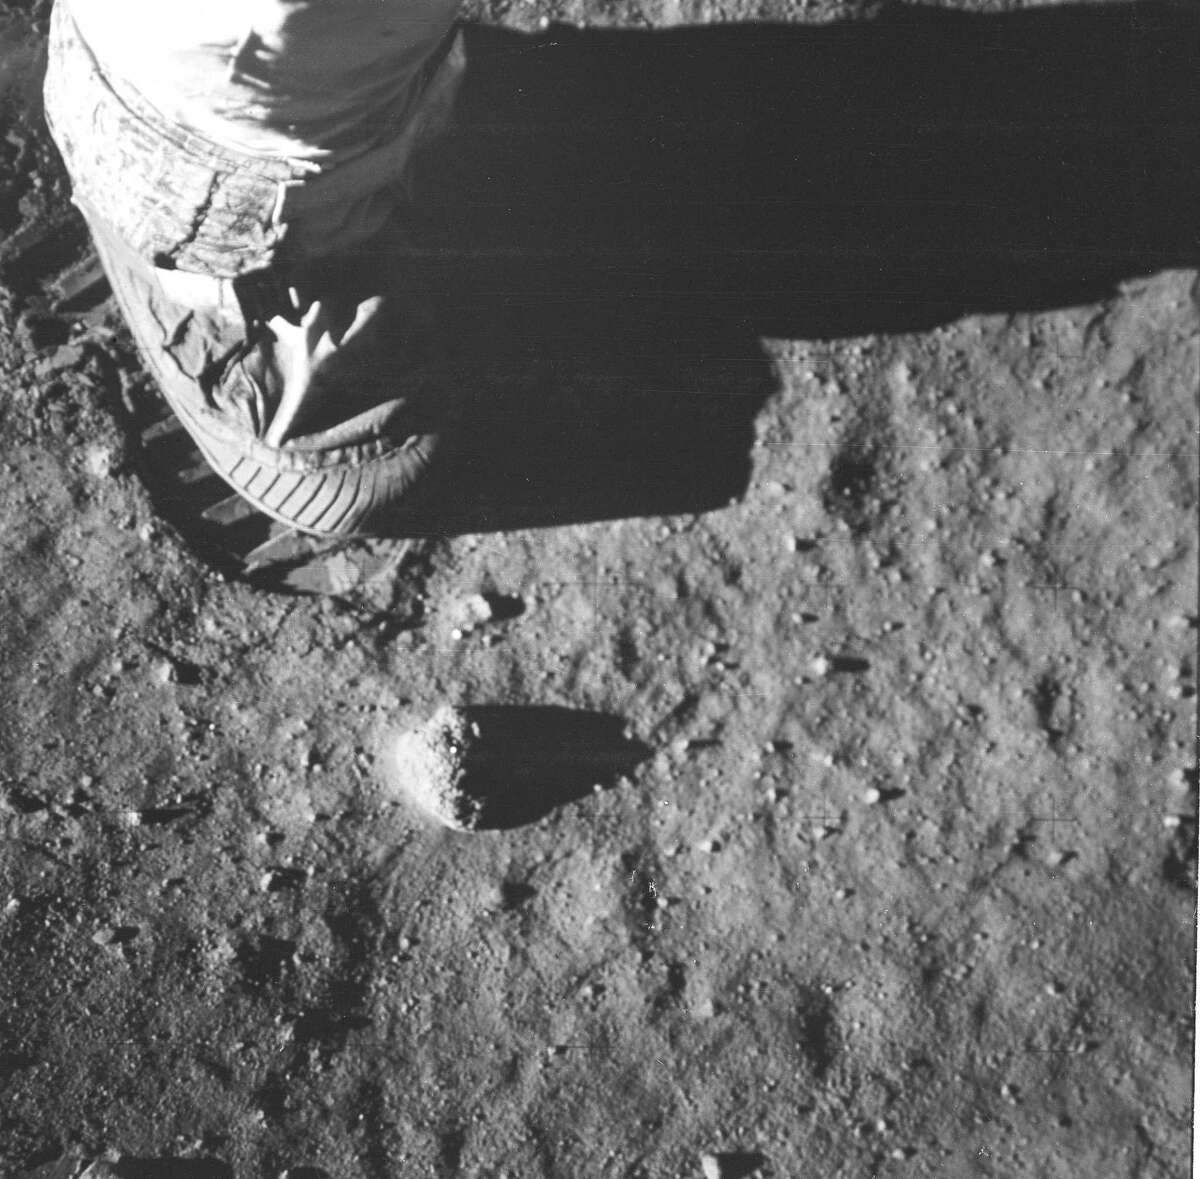 This is a close-up view of an astronaut's foot and footprint in the lunar soil, photographed during the Apollo 11 lunar surface extravehicular activity.